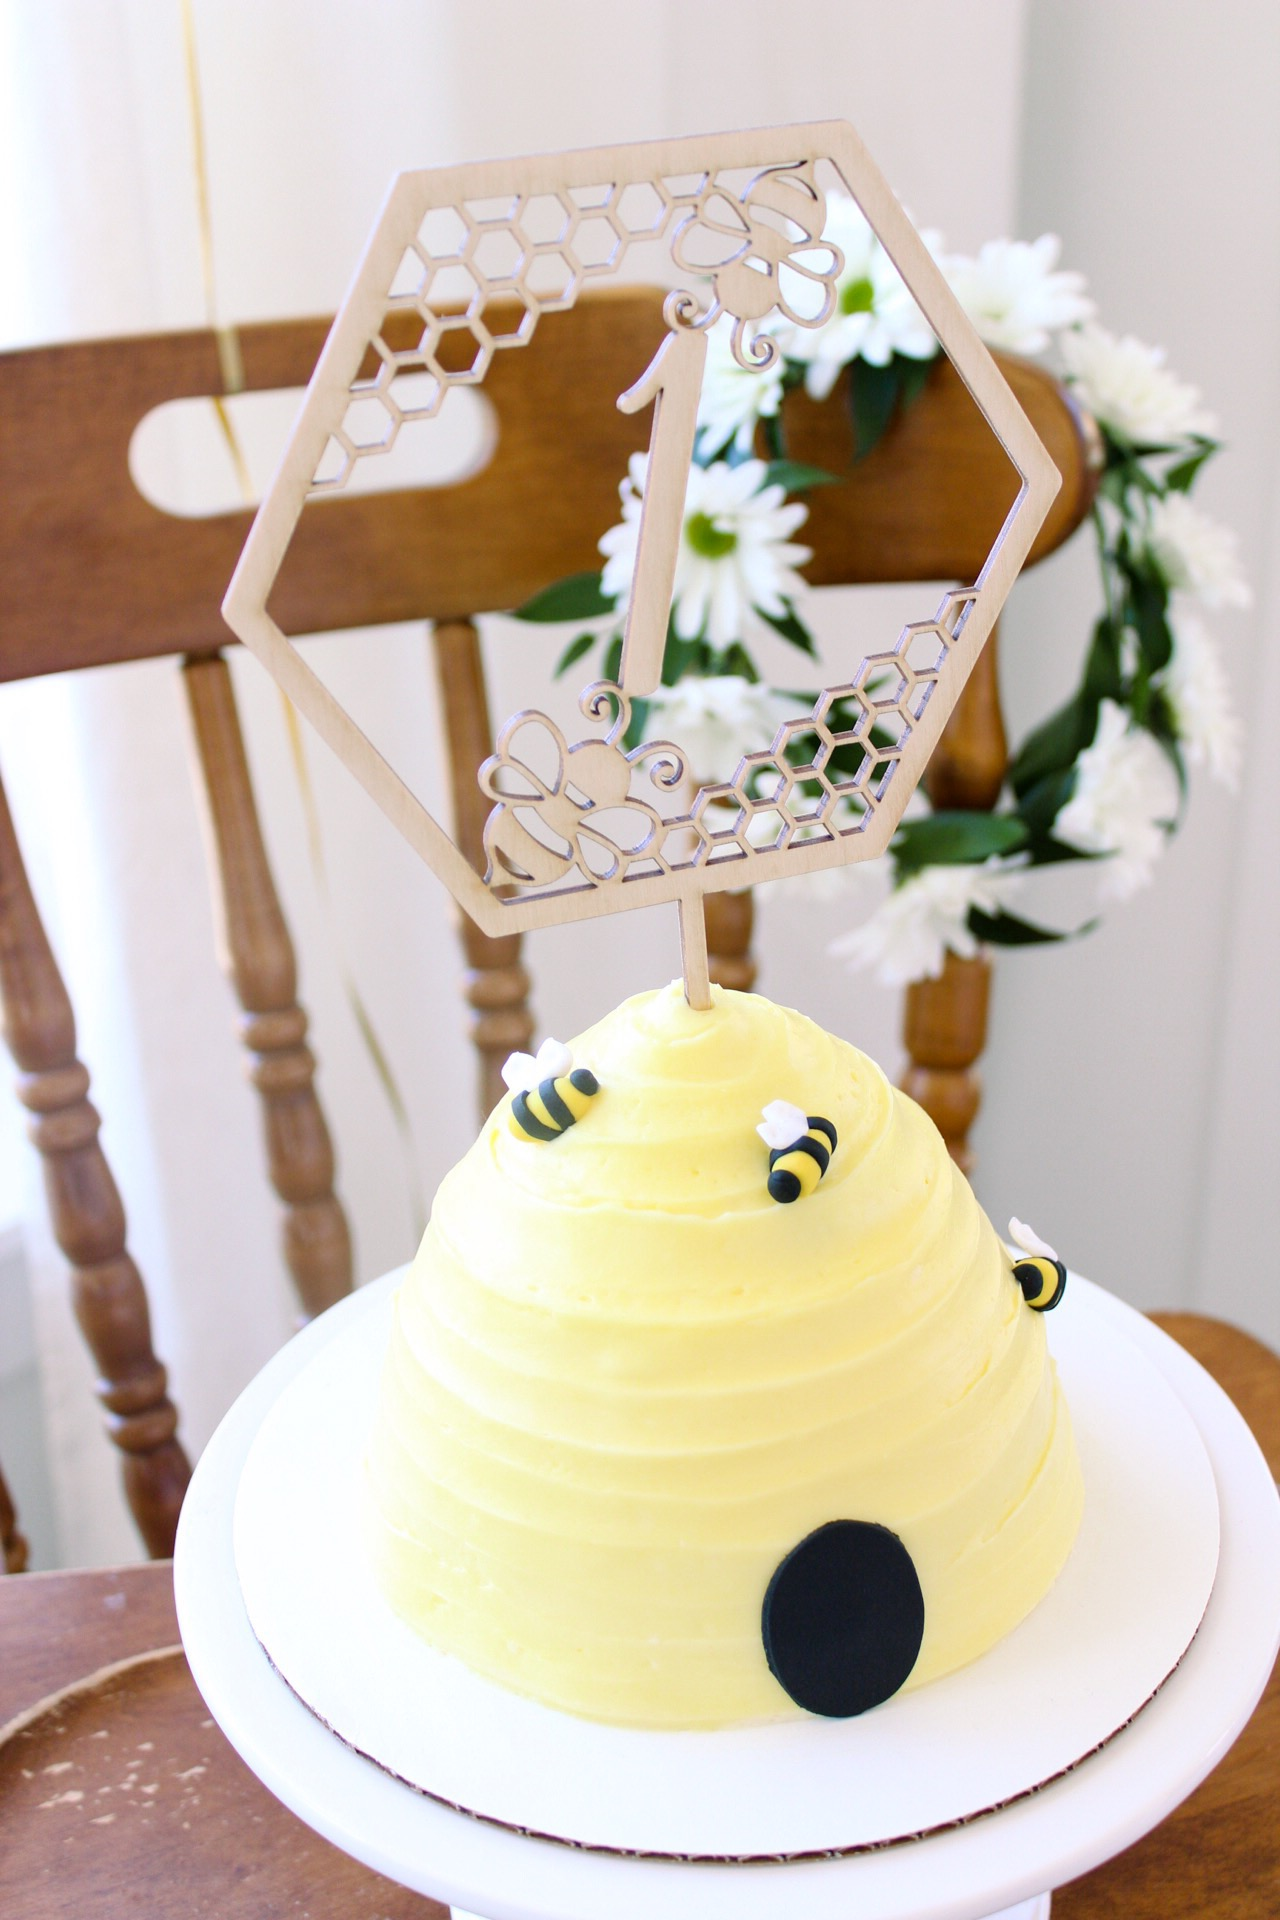 The honeybee cake was almost too pretty to smash! Baby Logan seemed to think otherwise (see below).